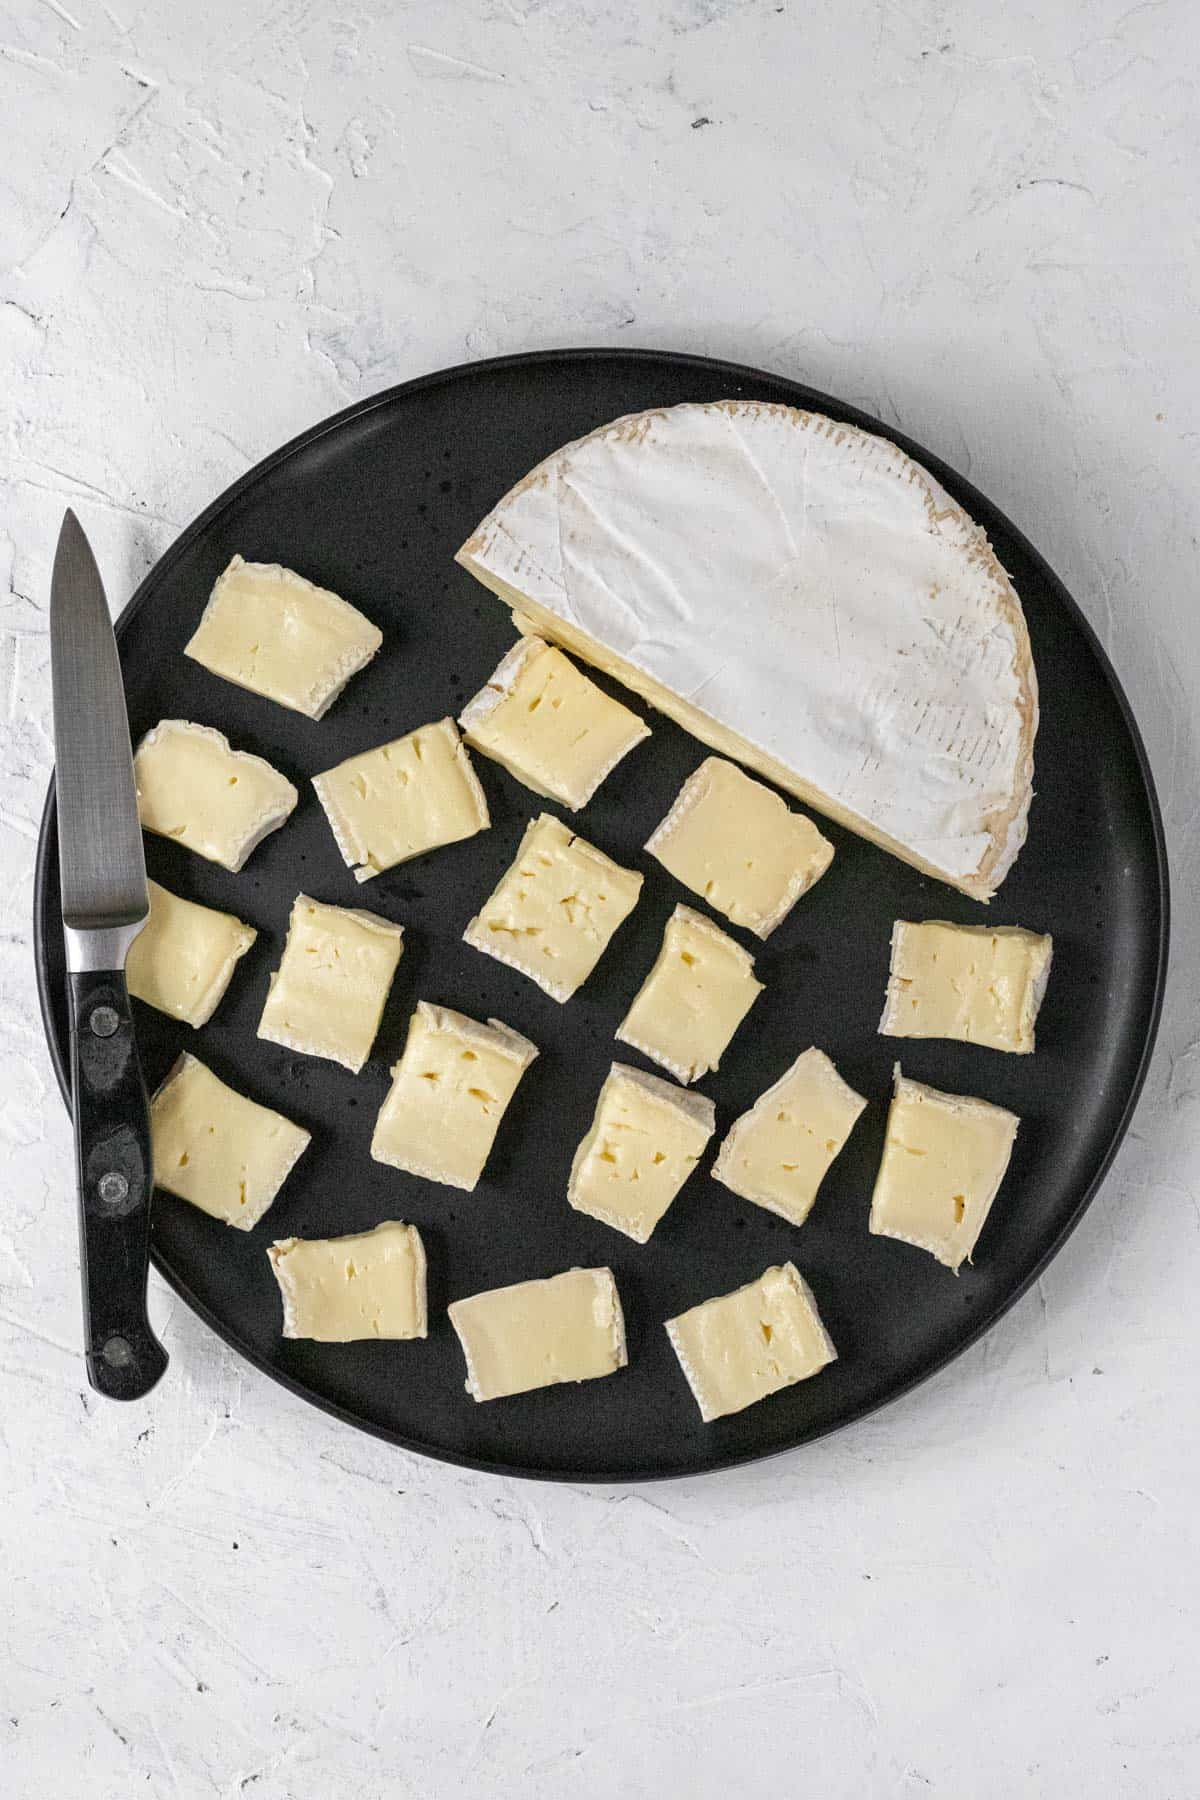 Cubed brie on a plate with a knife.